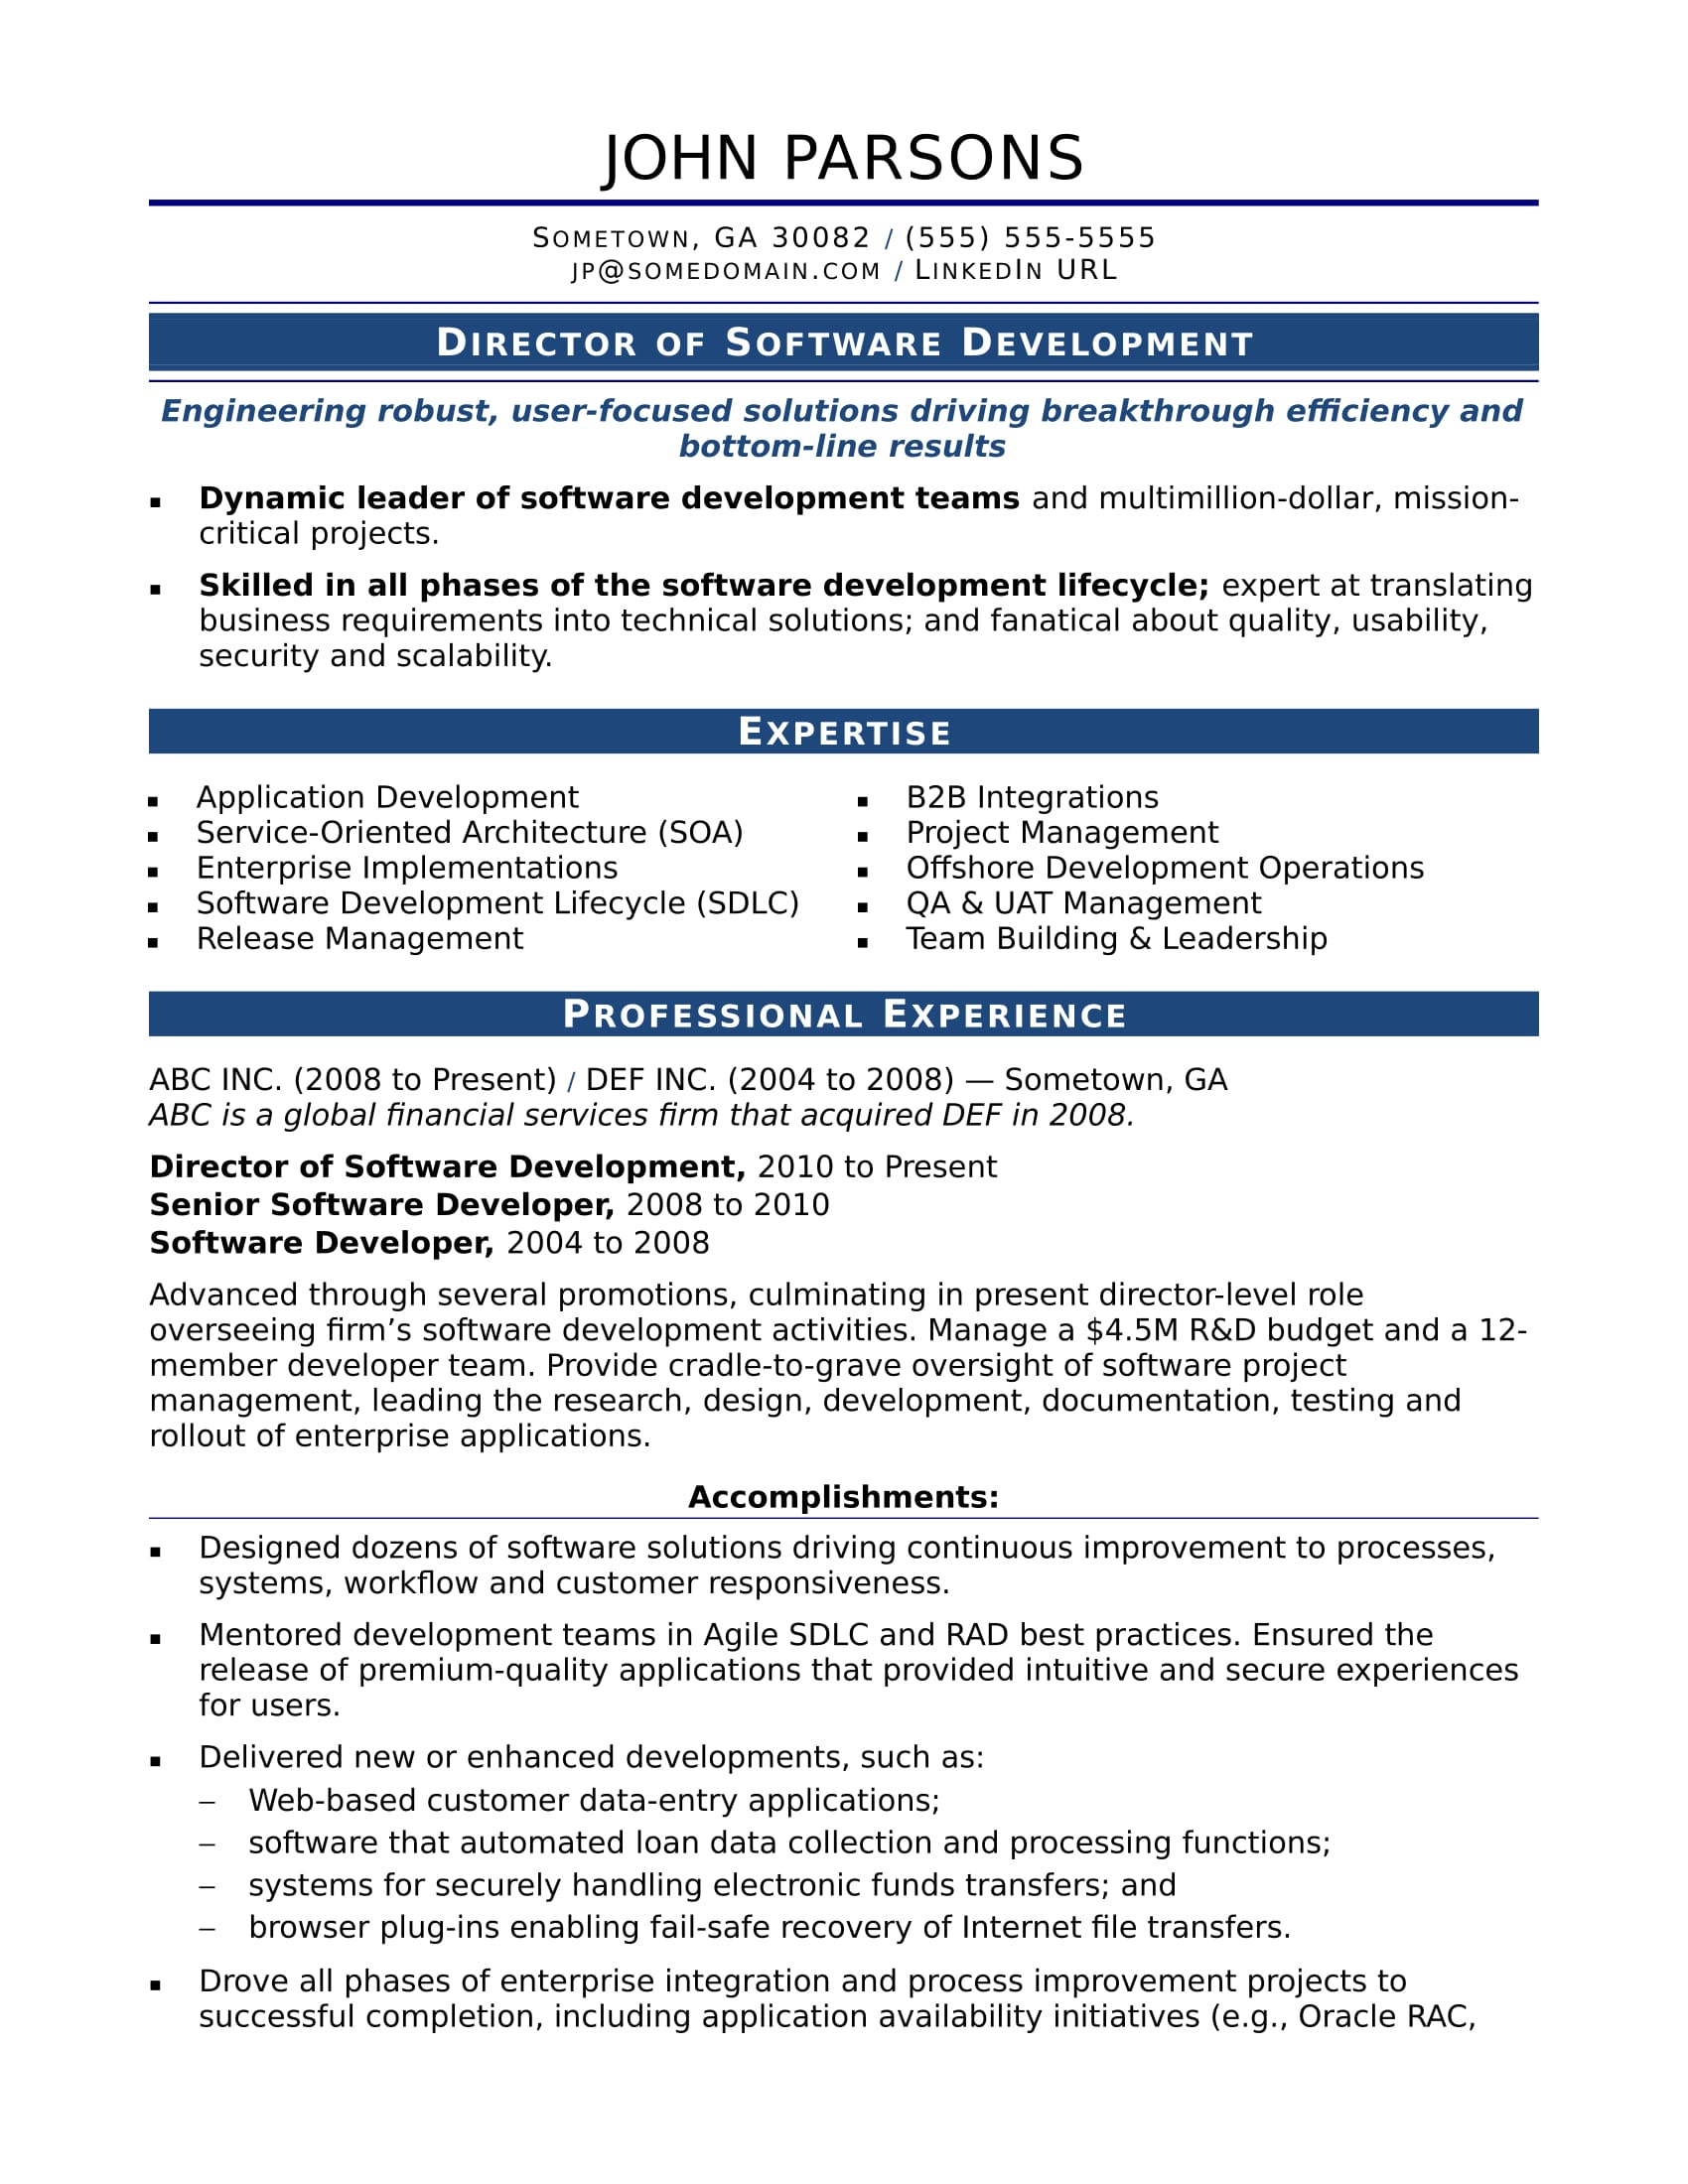 sample resume for an experienced it developer monster best professional software home Resume Best Professional Resume Software